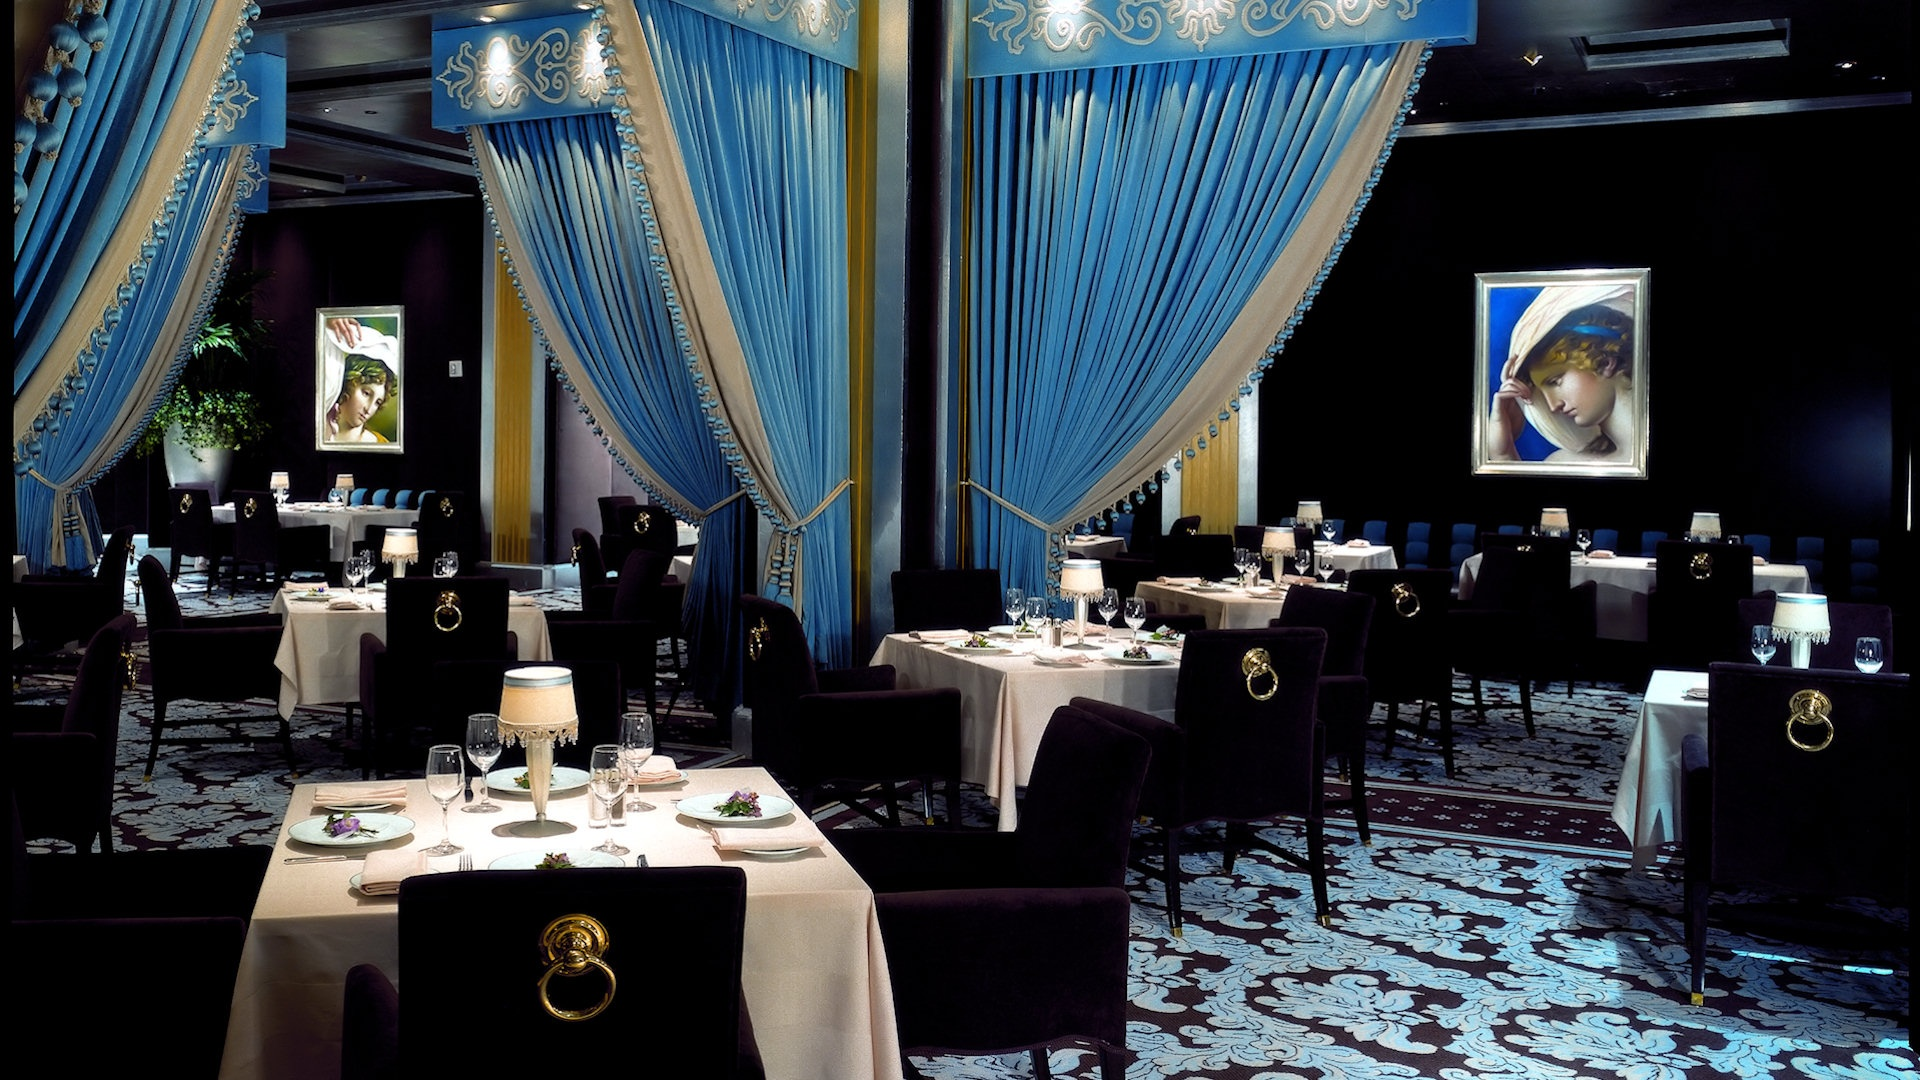 Mena House Hotel Greater Cairo Area Egypt, Check Out Mena ... - photo#31